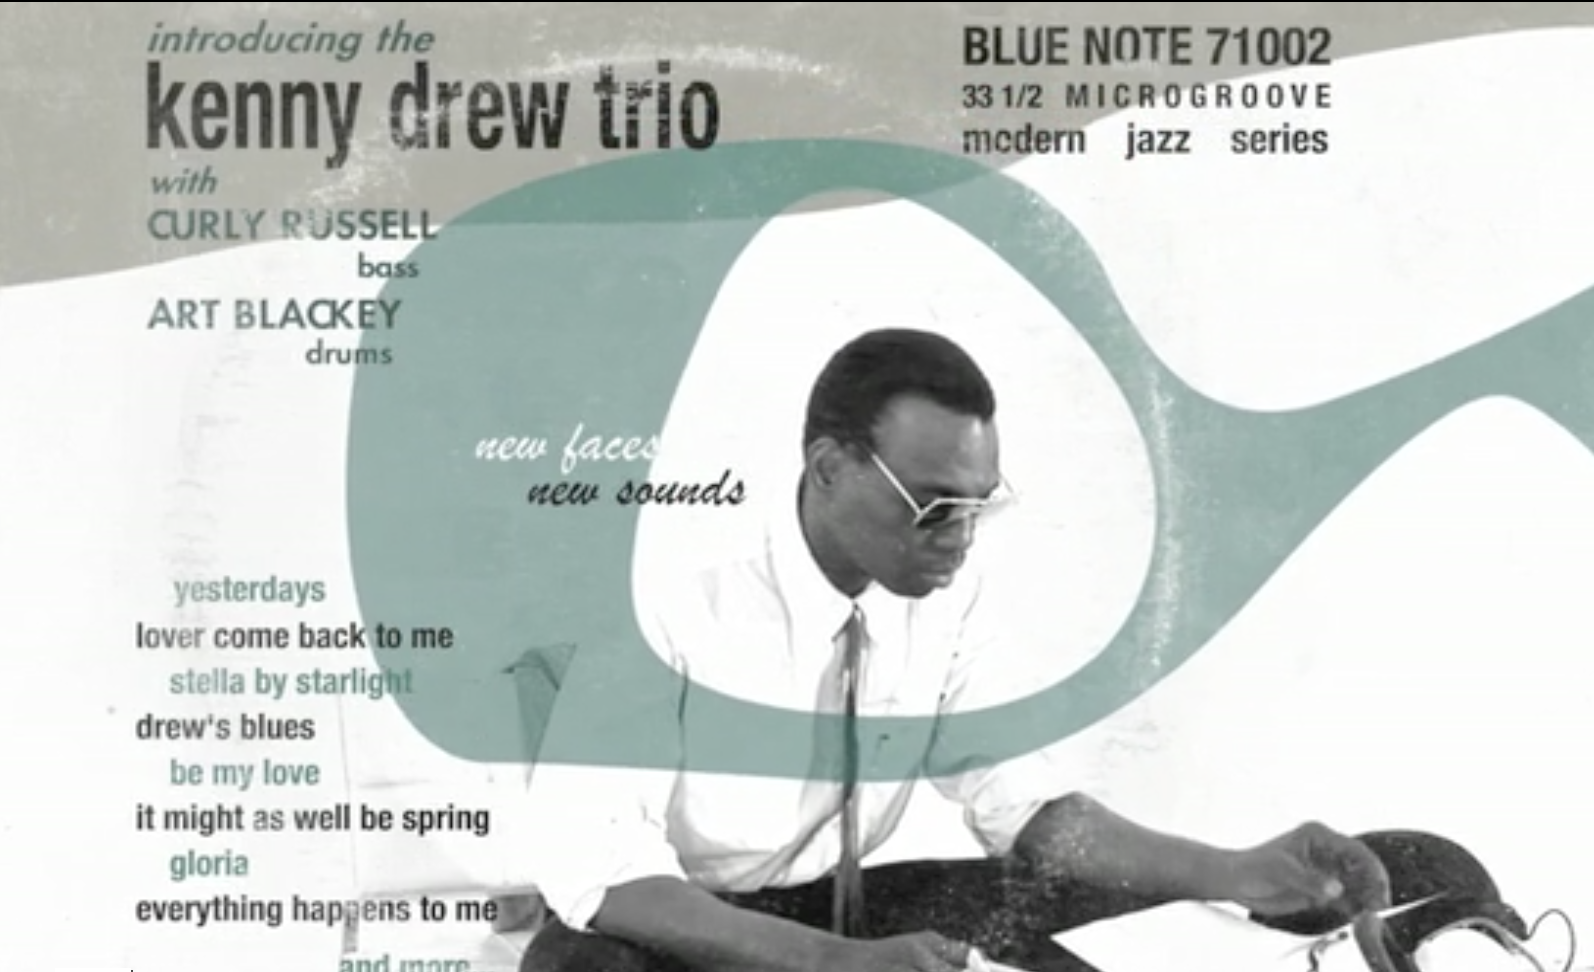 Classic Jazz Album Covers Animated & Brought to Life | Open